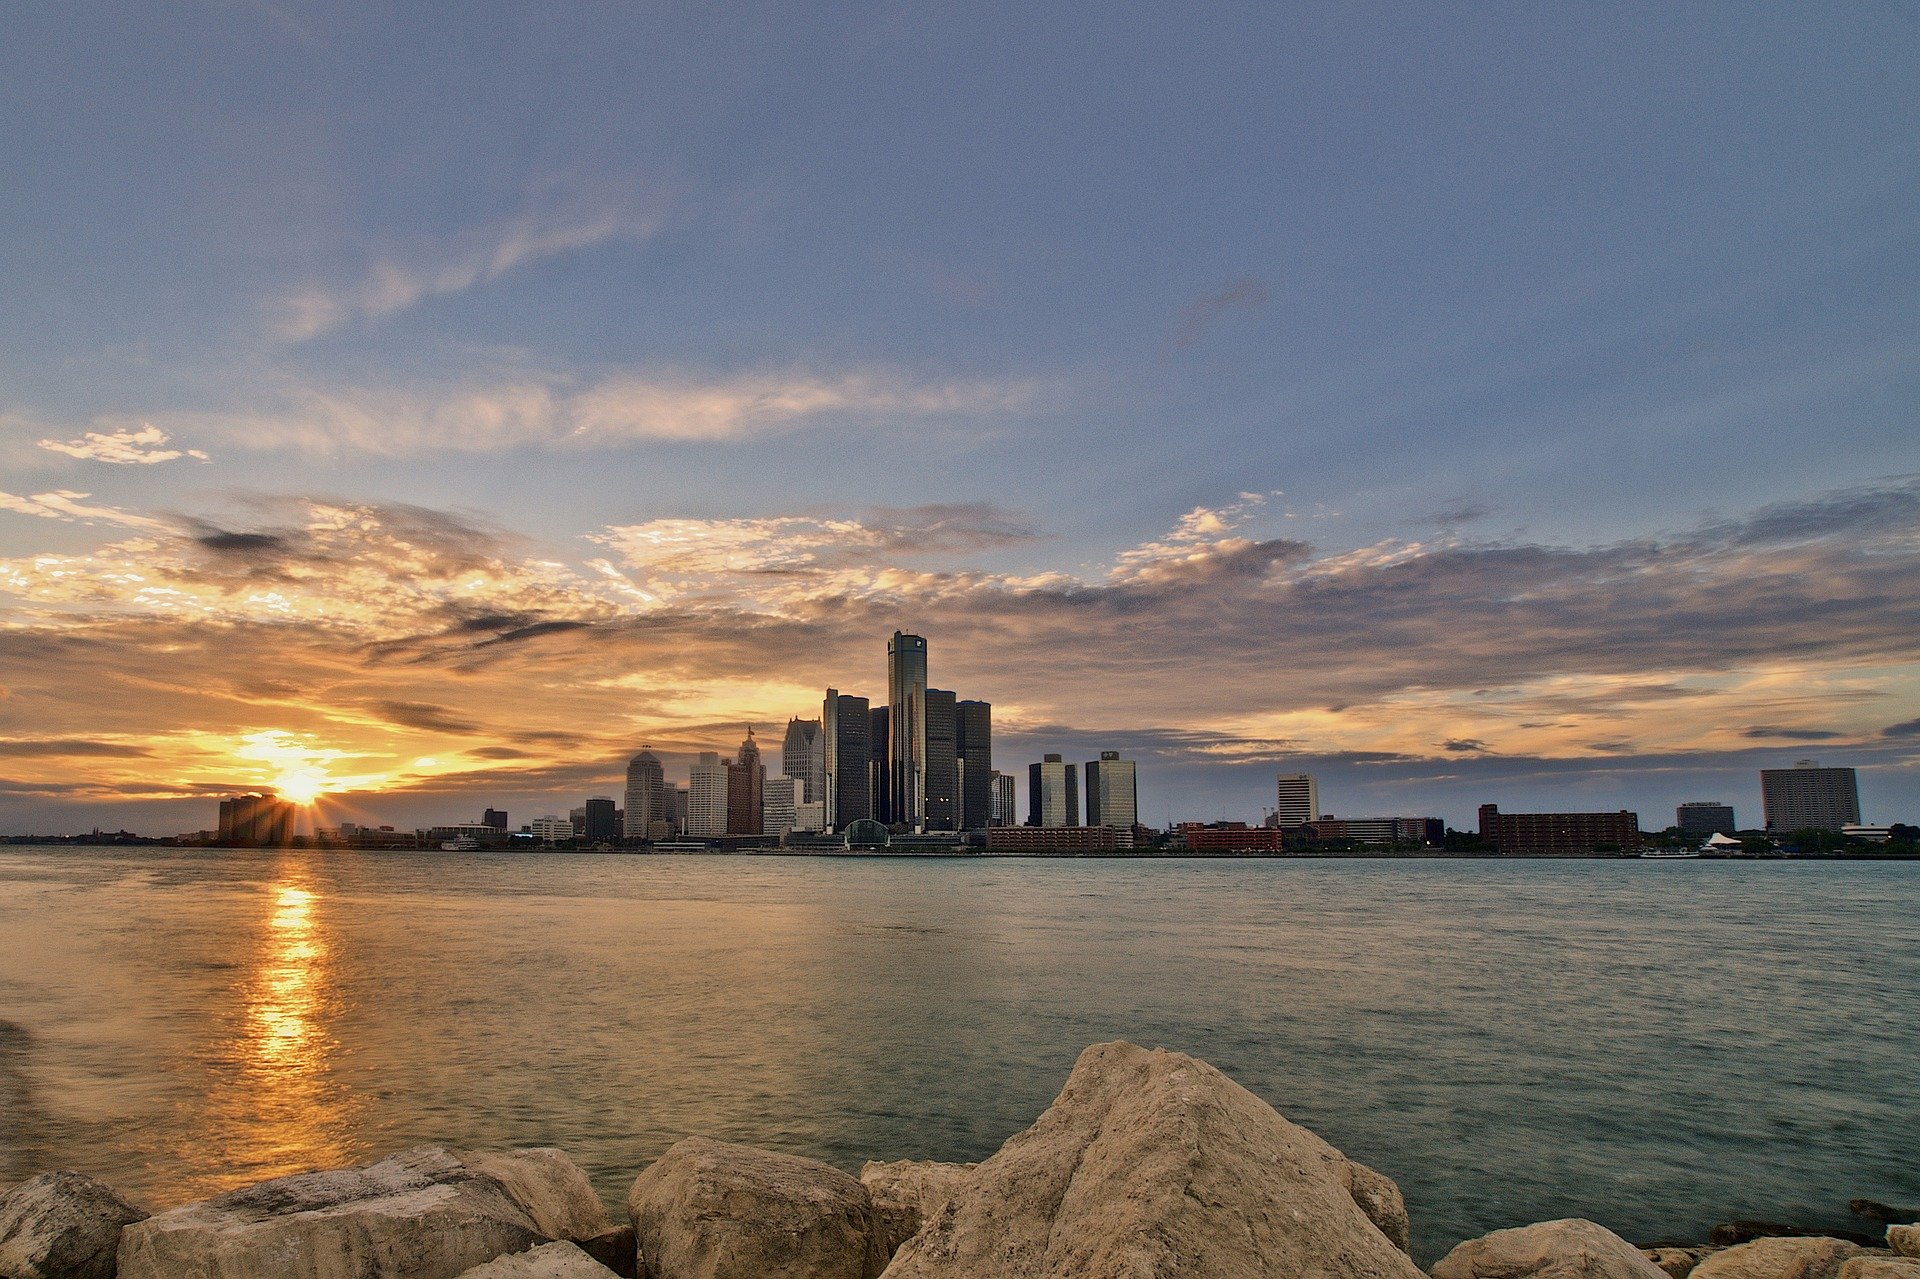 Detroit skyline at sunset - photo by Peter Mol under Pixabay License